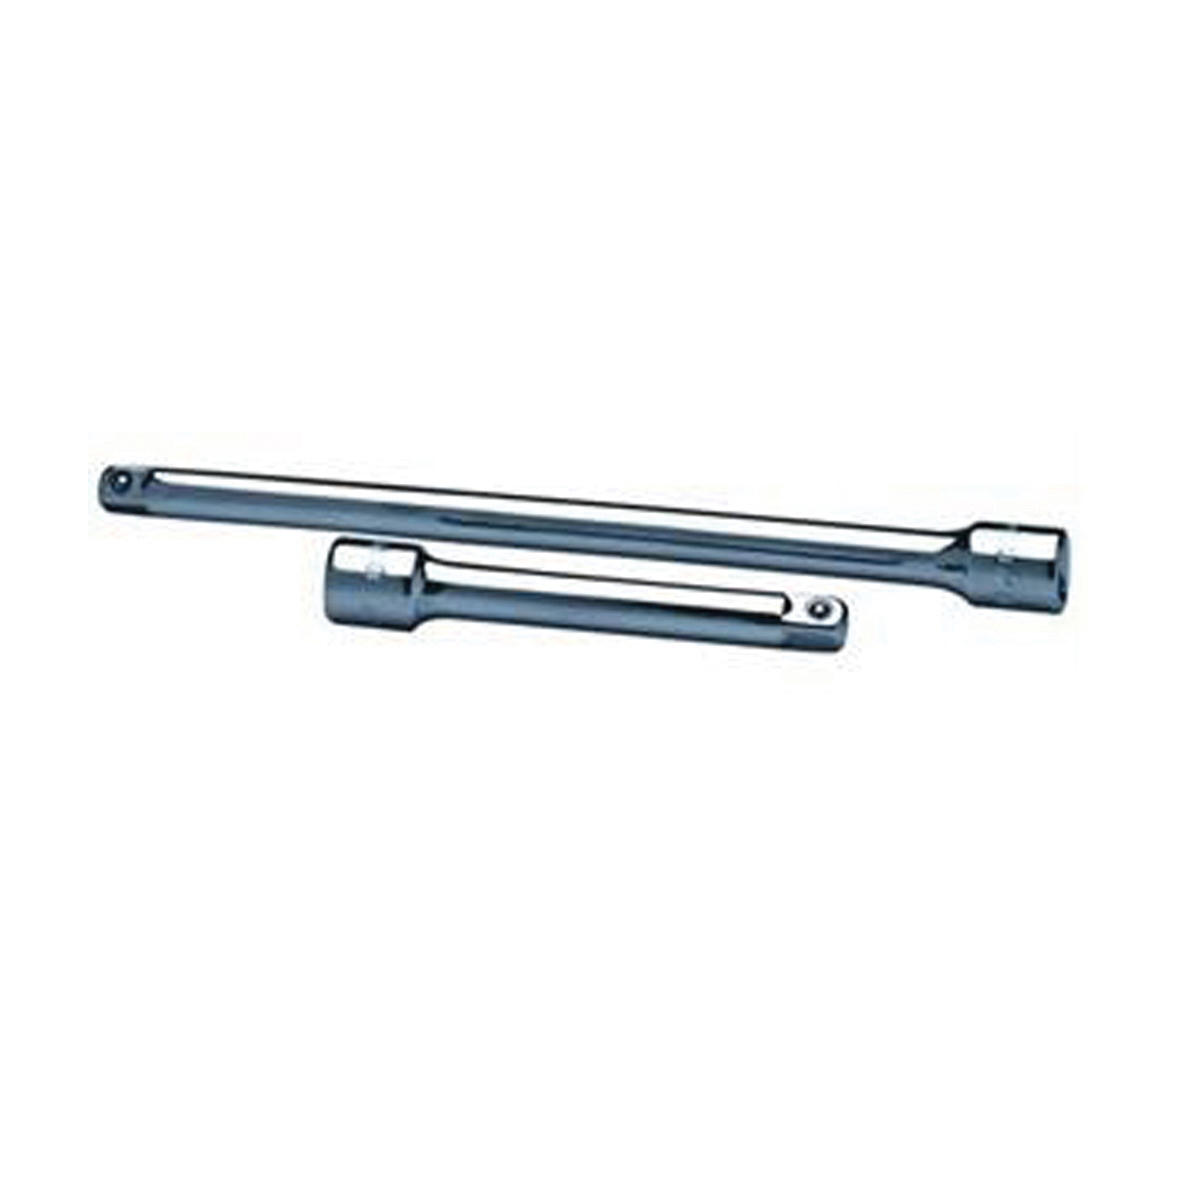 Stanley® 86-206 Extension Bar, Imperial, 3/8 in, 3 in OAL